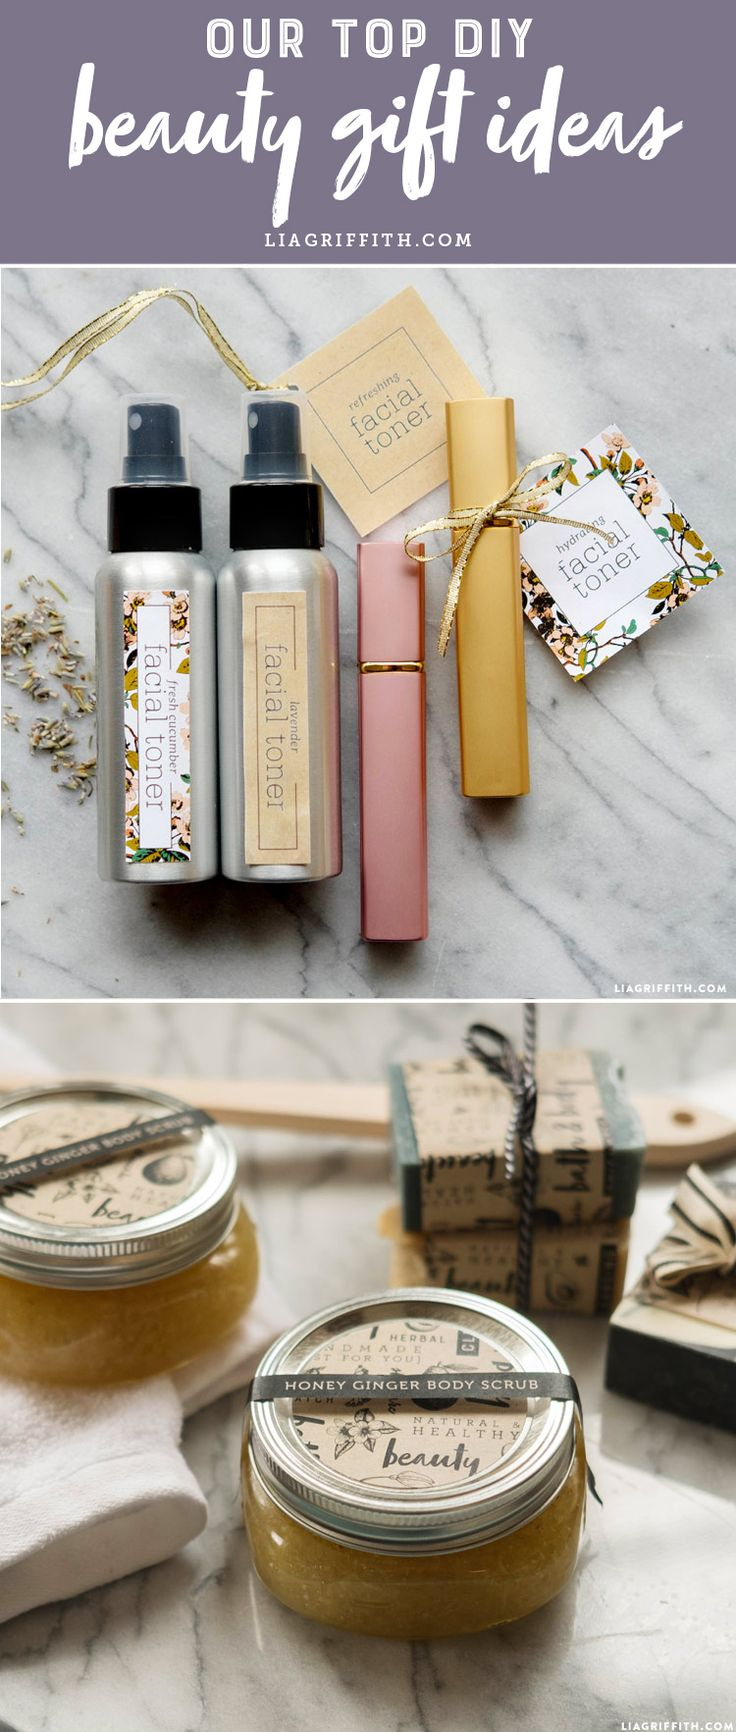 Our Top DIY Beauty Gift Ideas - Lia Griffith - www.liagriffith.com #diybeauty #diygift #diygifts #madewithlia